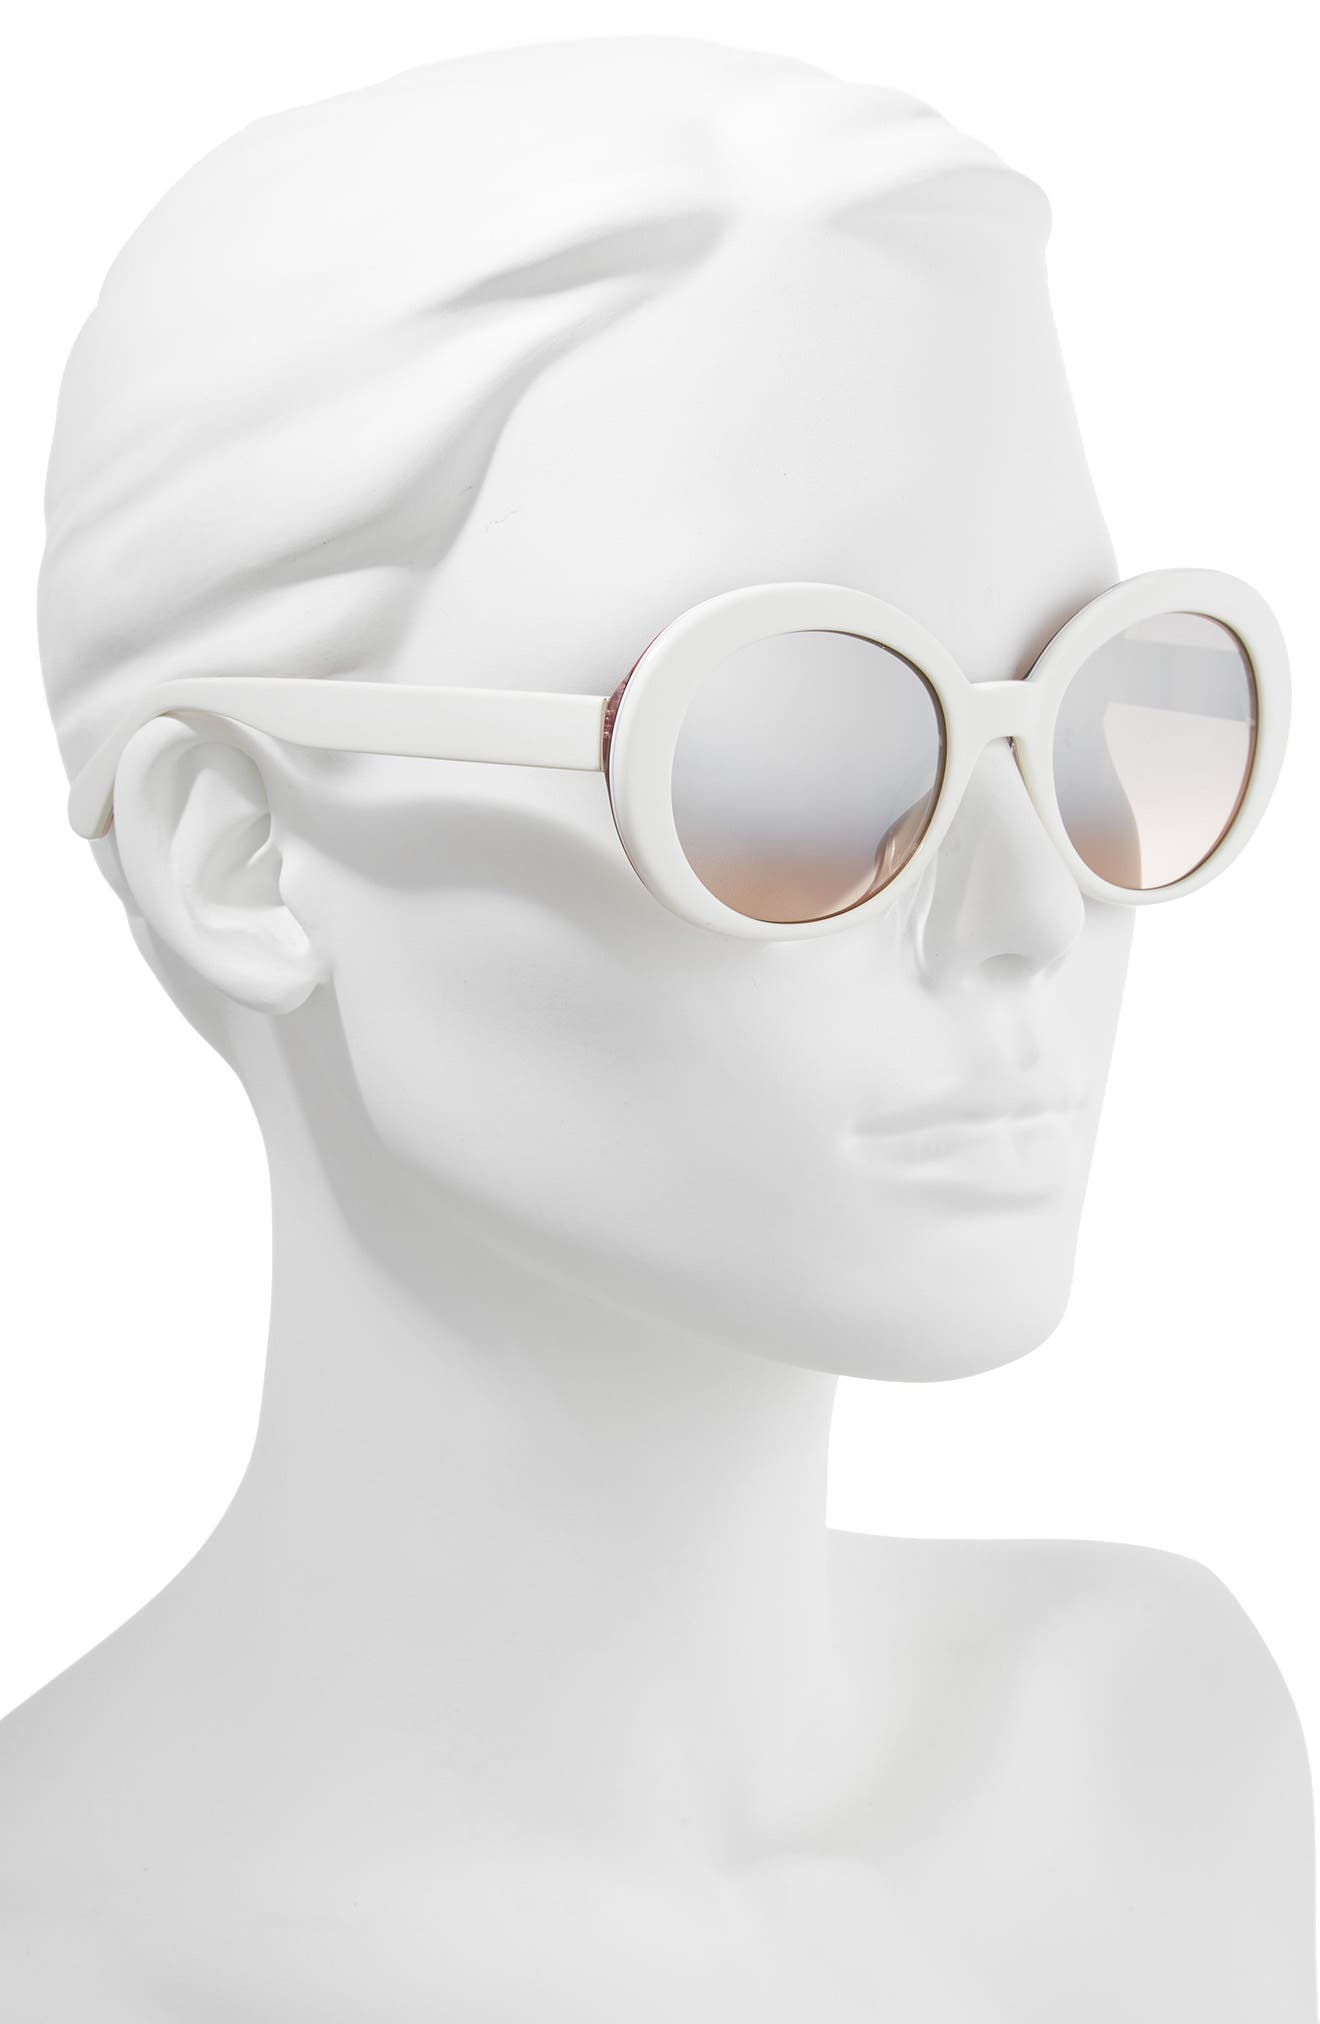 cindra 54mm gradient round sunglasses,                             Alternate thumbnail 2, color,                             Ivory